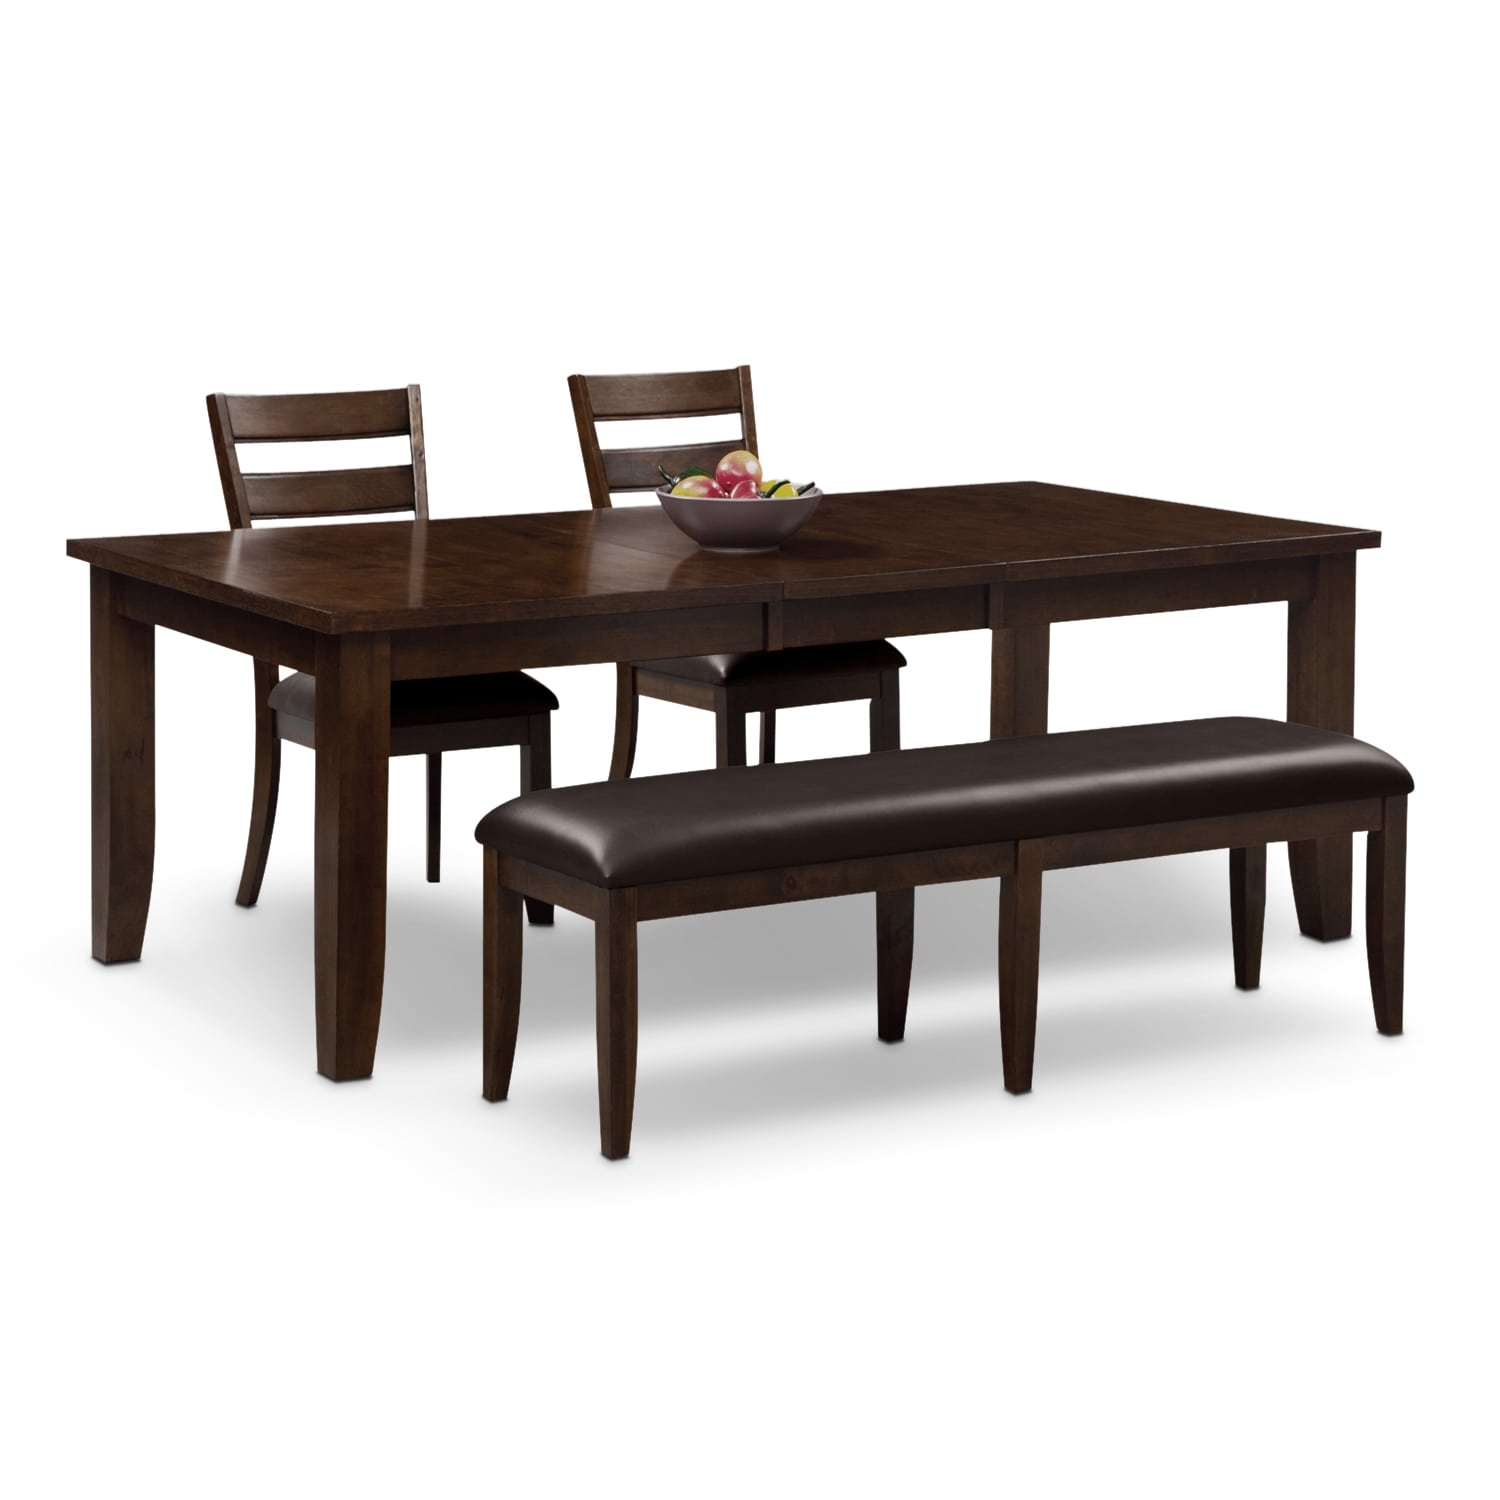 [Abaco 4 Pc. Dinette]